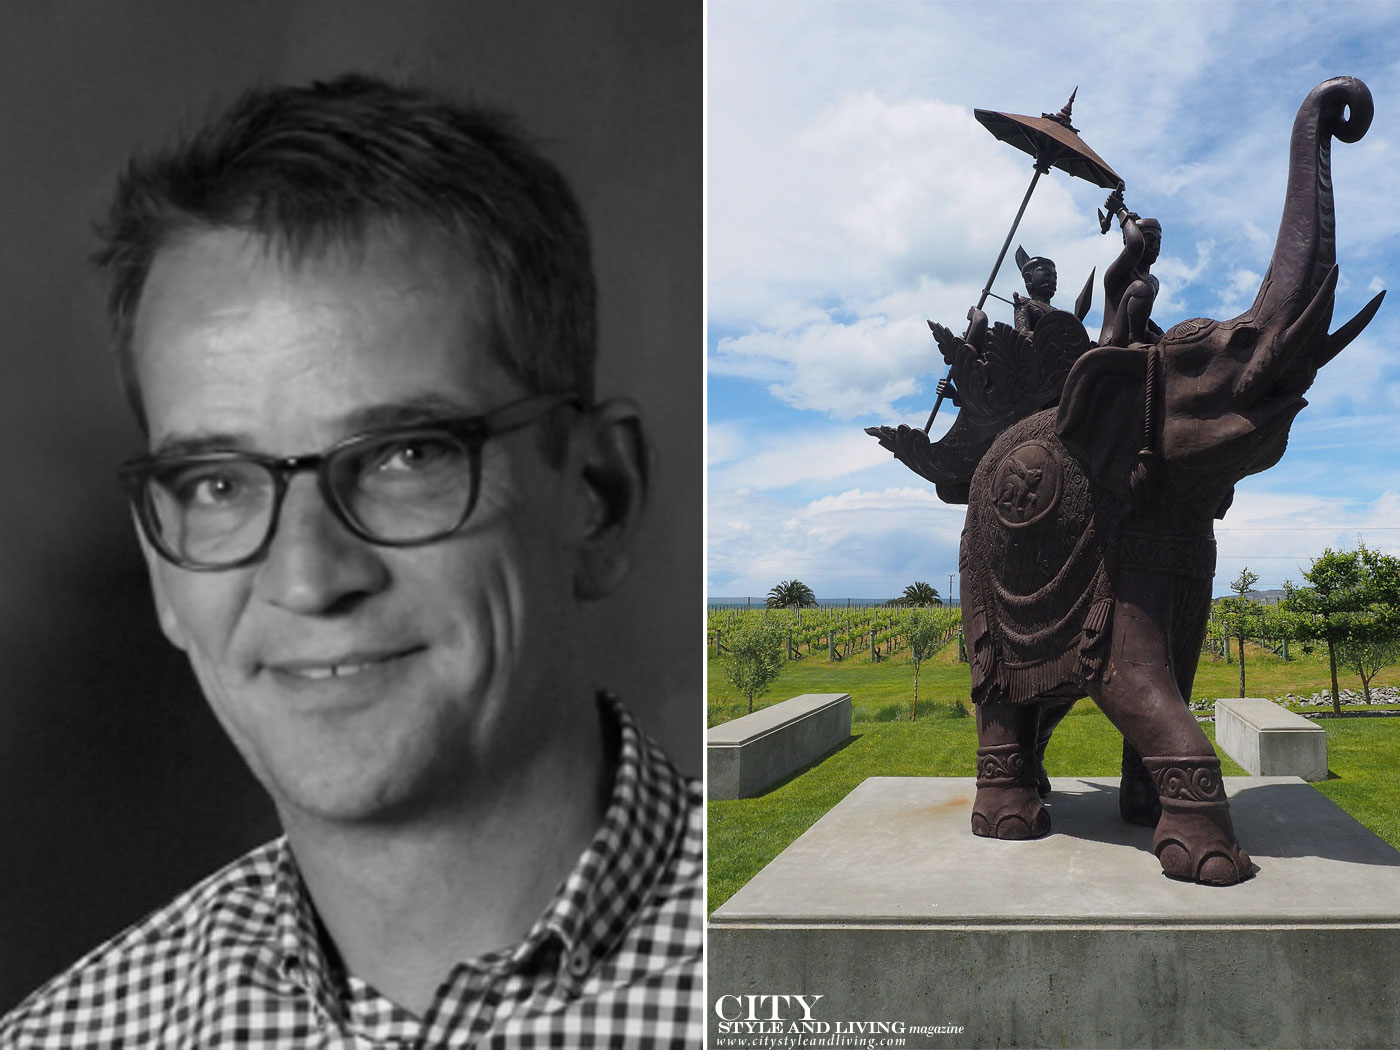 City Style and Living Magazine Elephant Hill Hawkes Bay New Zealand Andreas Weiss, vineyards and elephant sculpture